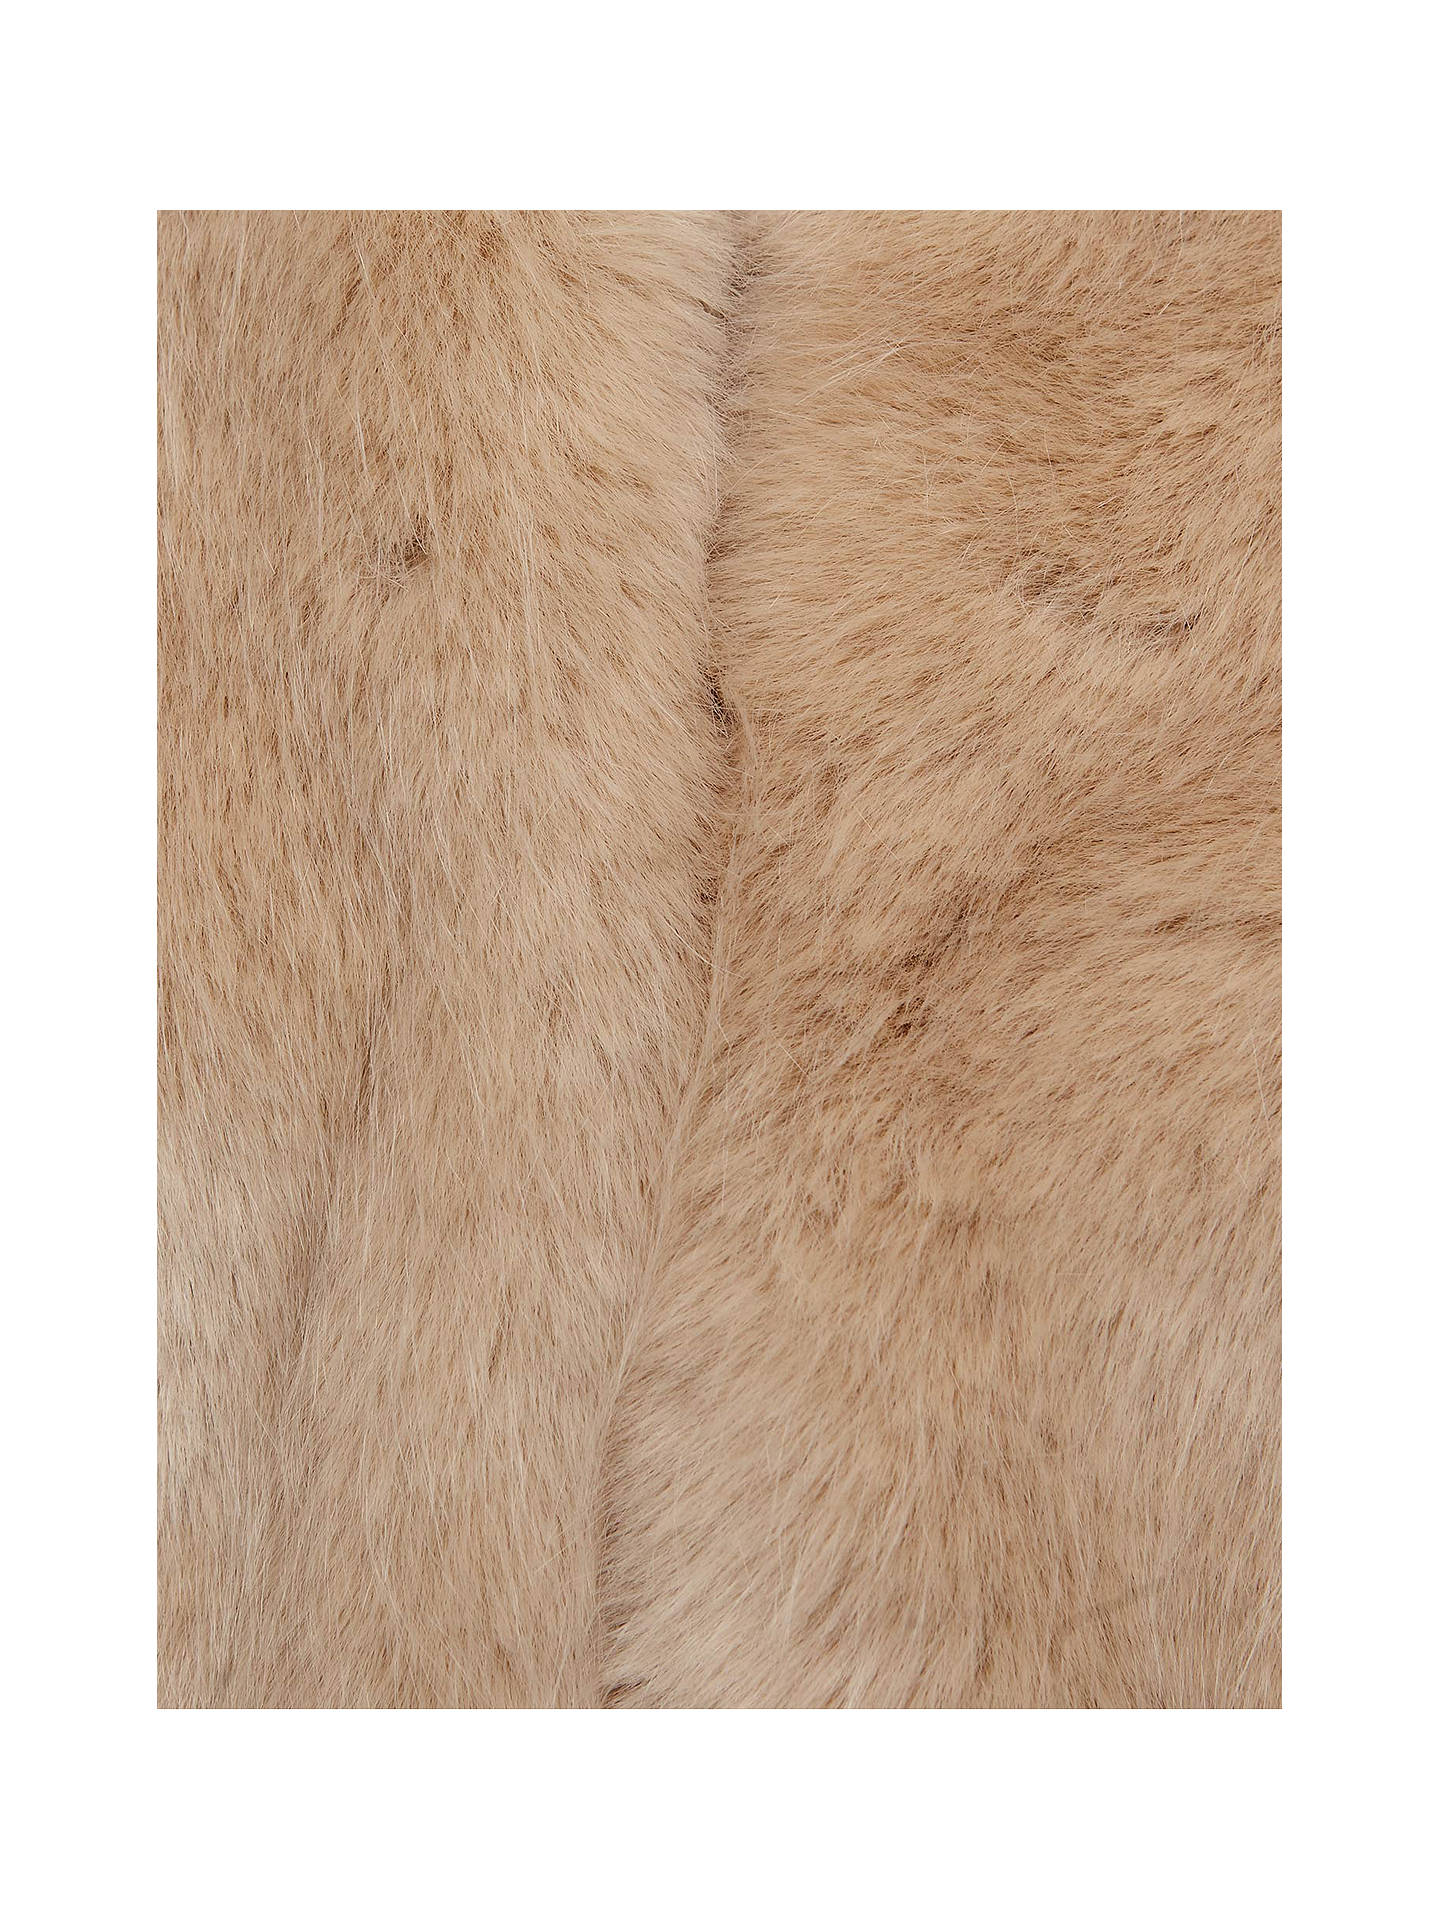 BuyReiss Ethel Faux Fur Stole, Oatmeal, One Size Online at johnlewis.com